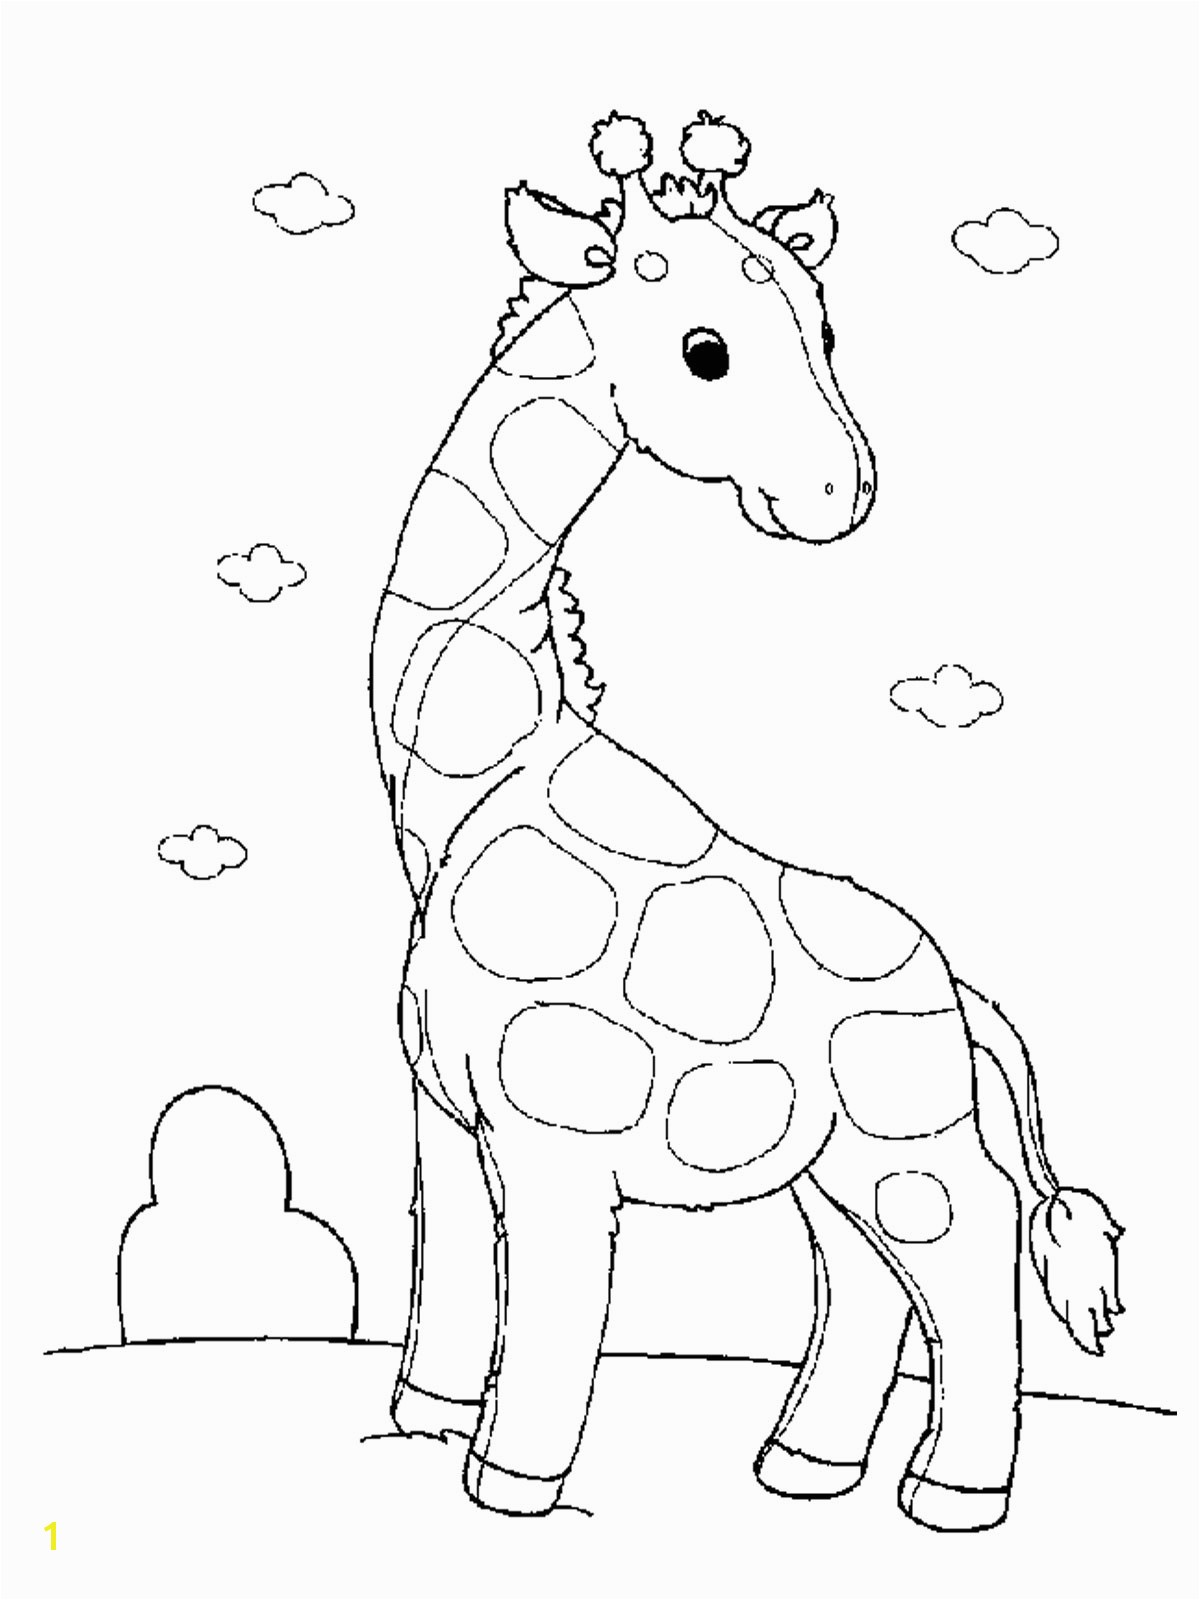 Free Printable Animal Coloring Pages Free Printable Giraffe Coloring Pages for Kids